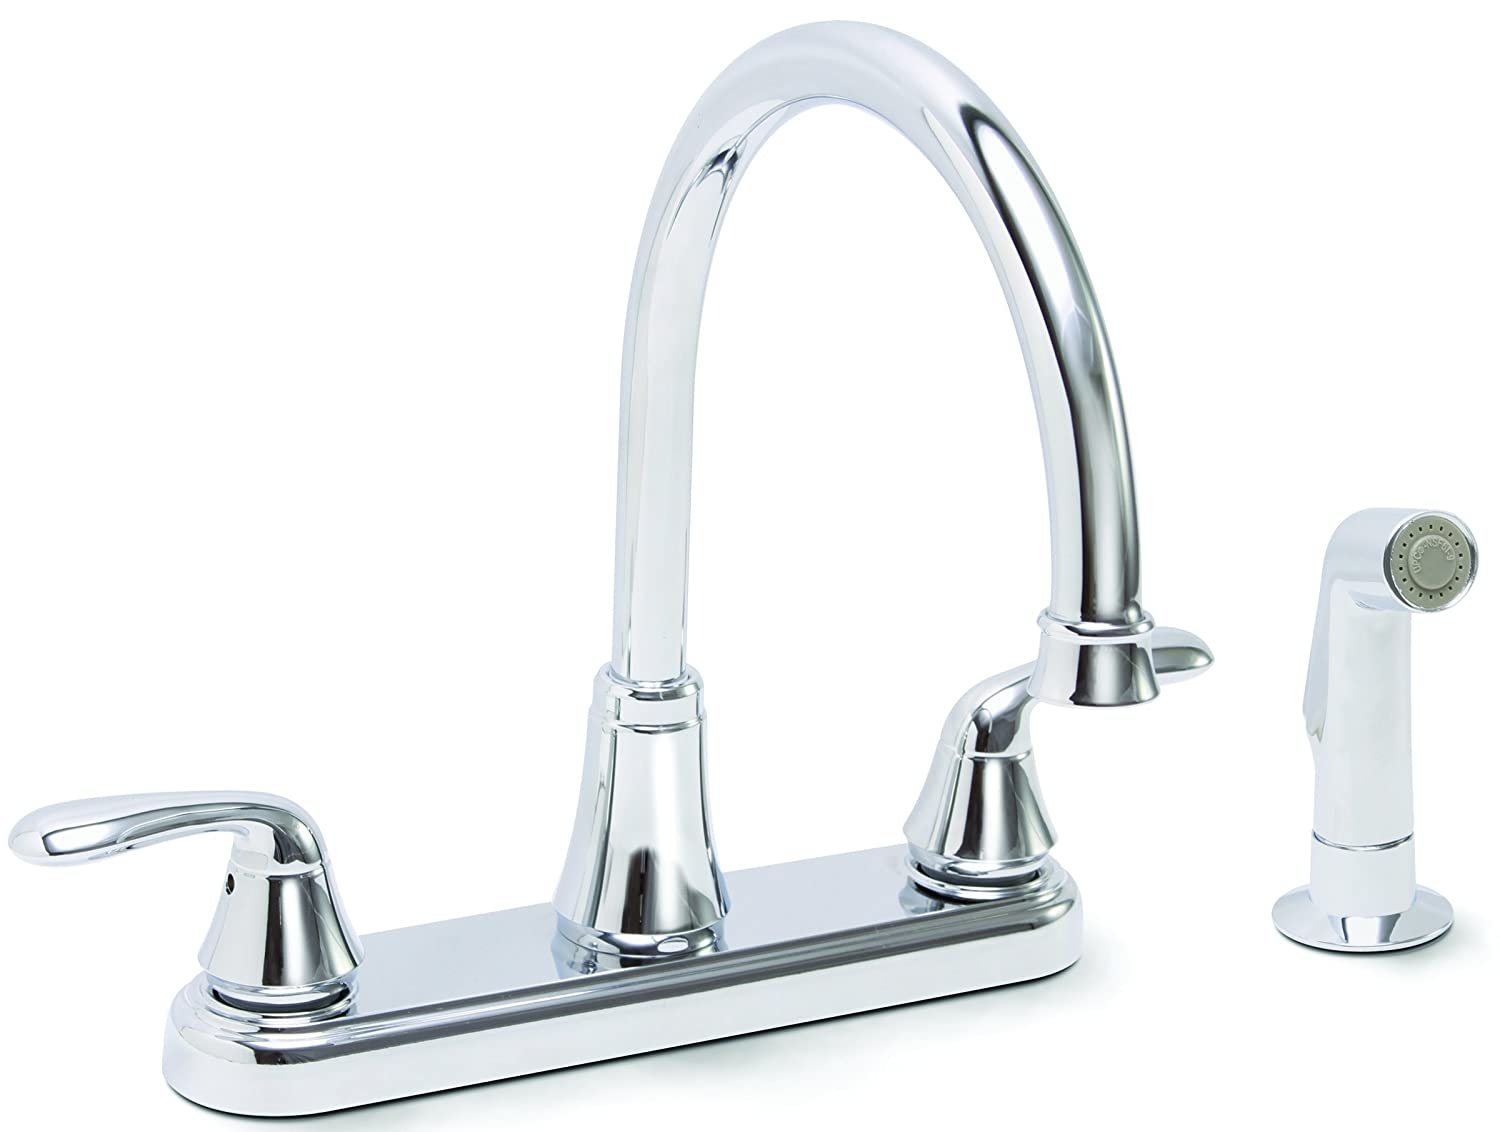 Premier 126967 Waterfront Kitchen Faucet With Two Handles And Side Spray,  Chrome, Lead Free   Touch On Kitchen Sink Faucets   Amazon.com